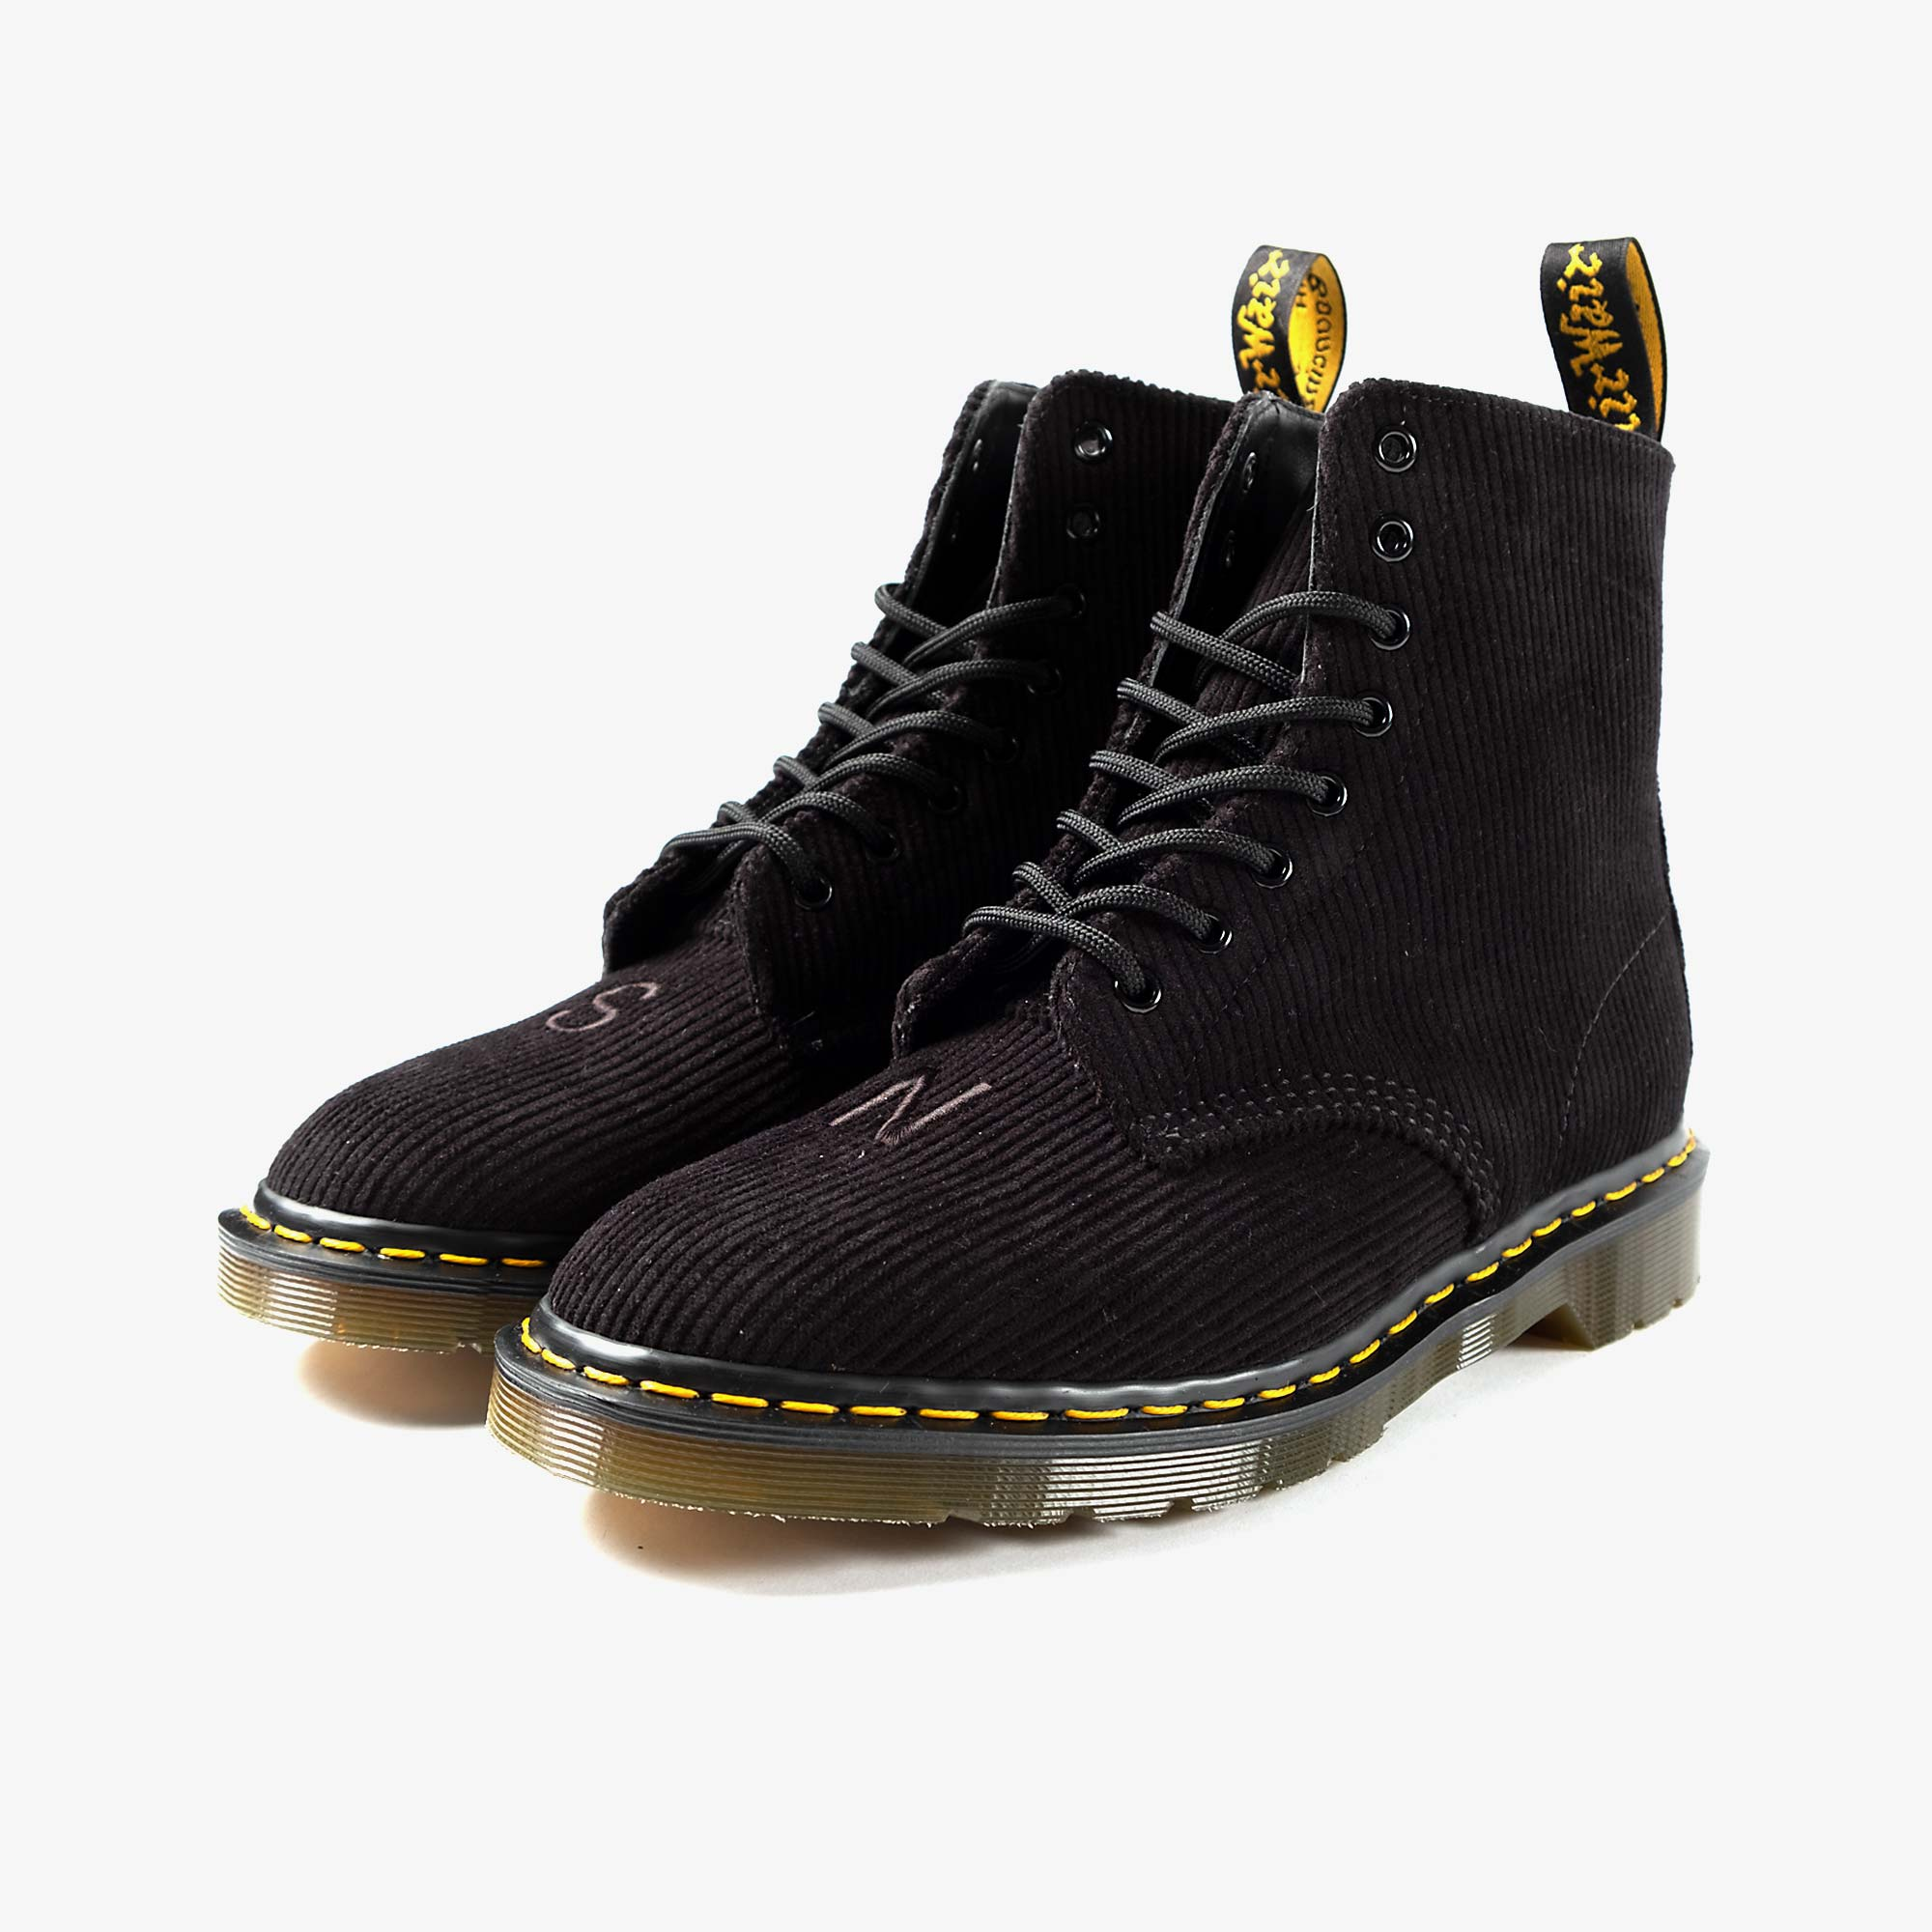 Undercover Undercover x Dr. Martens 1460 Corduroy - Black 2